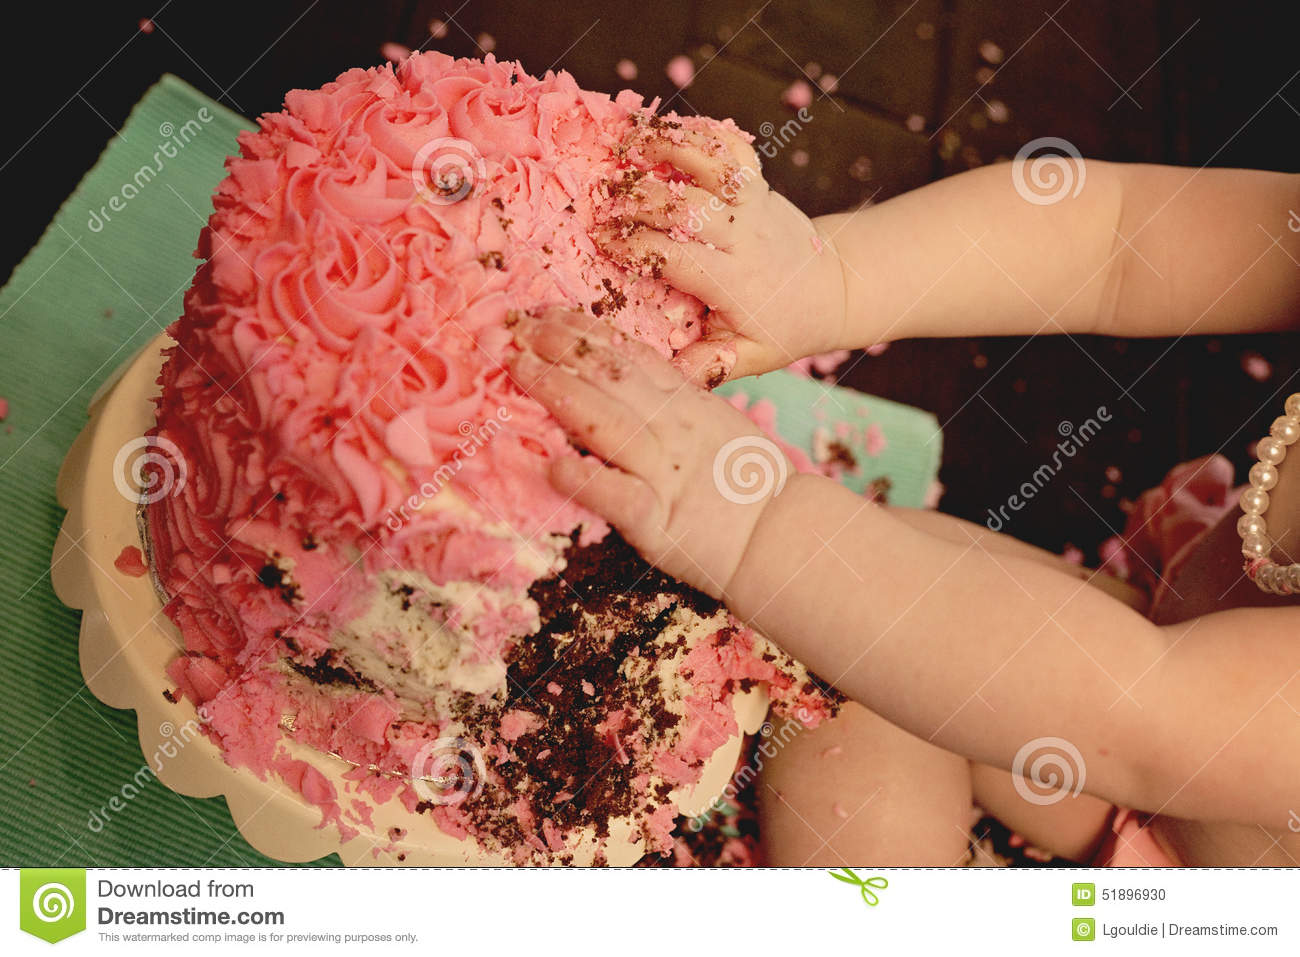 Smashed Cake Clipart : Cake Smash Stock Photo - Image: 51896930